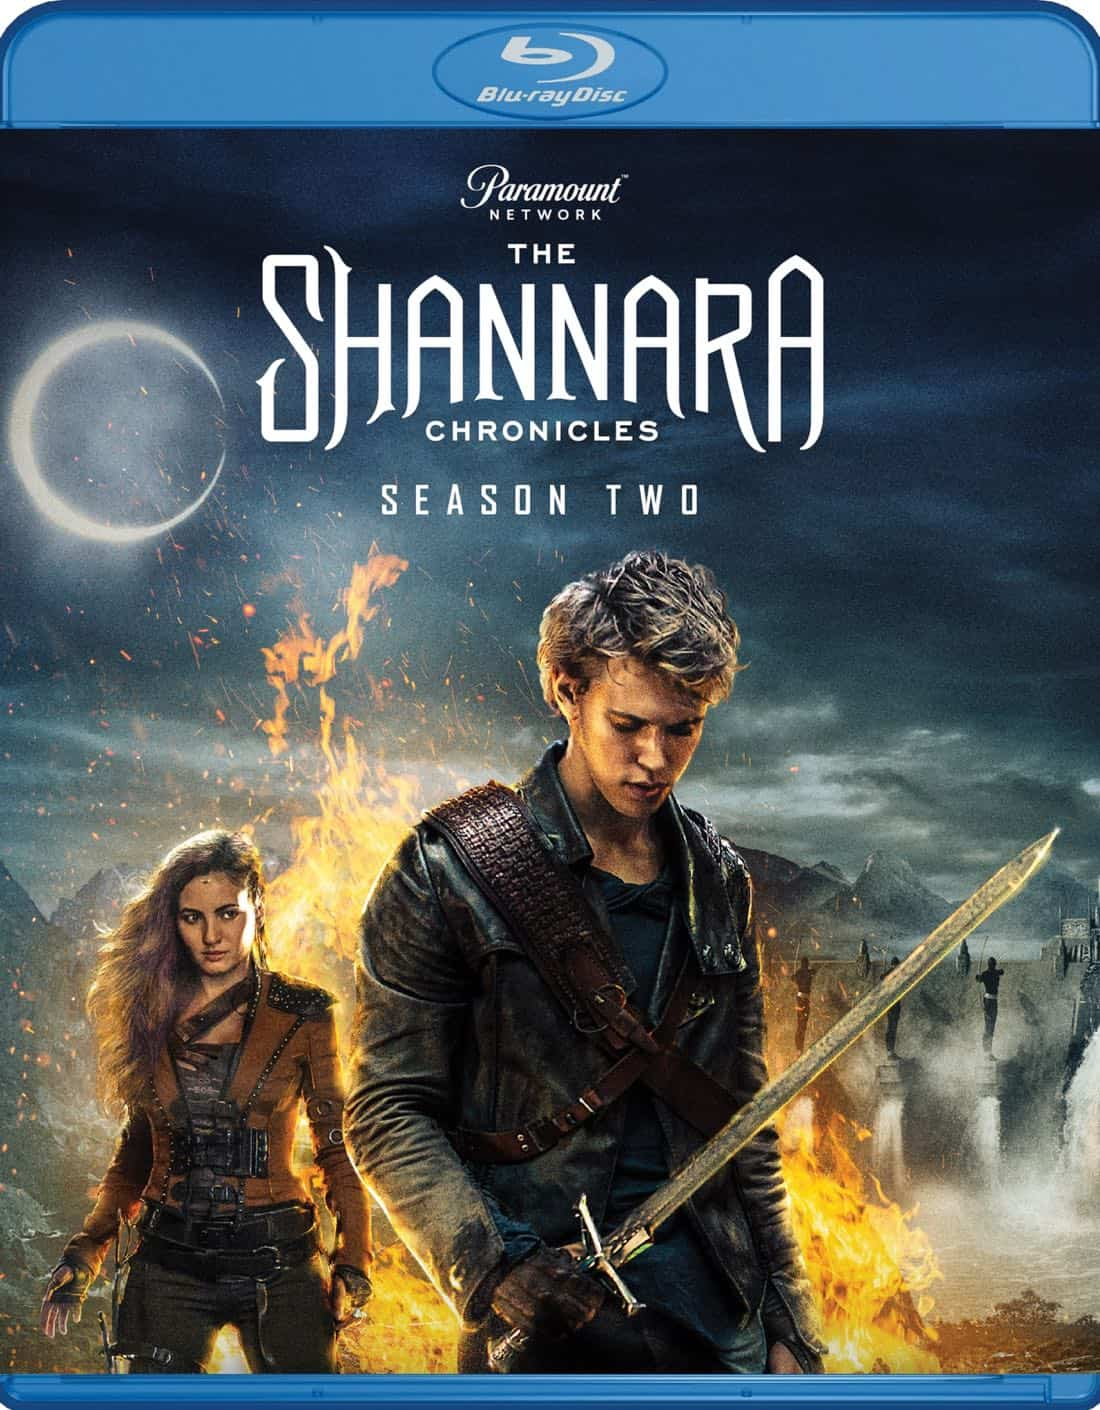 THE SHANNARA CHRONICLES Season 2 Blurry